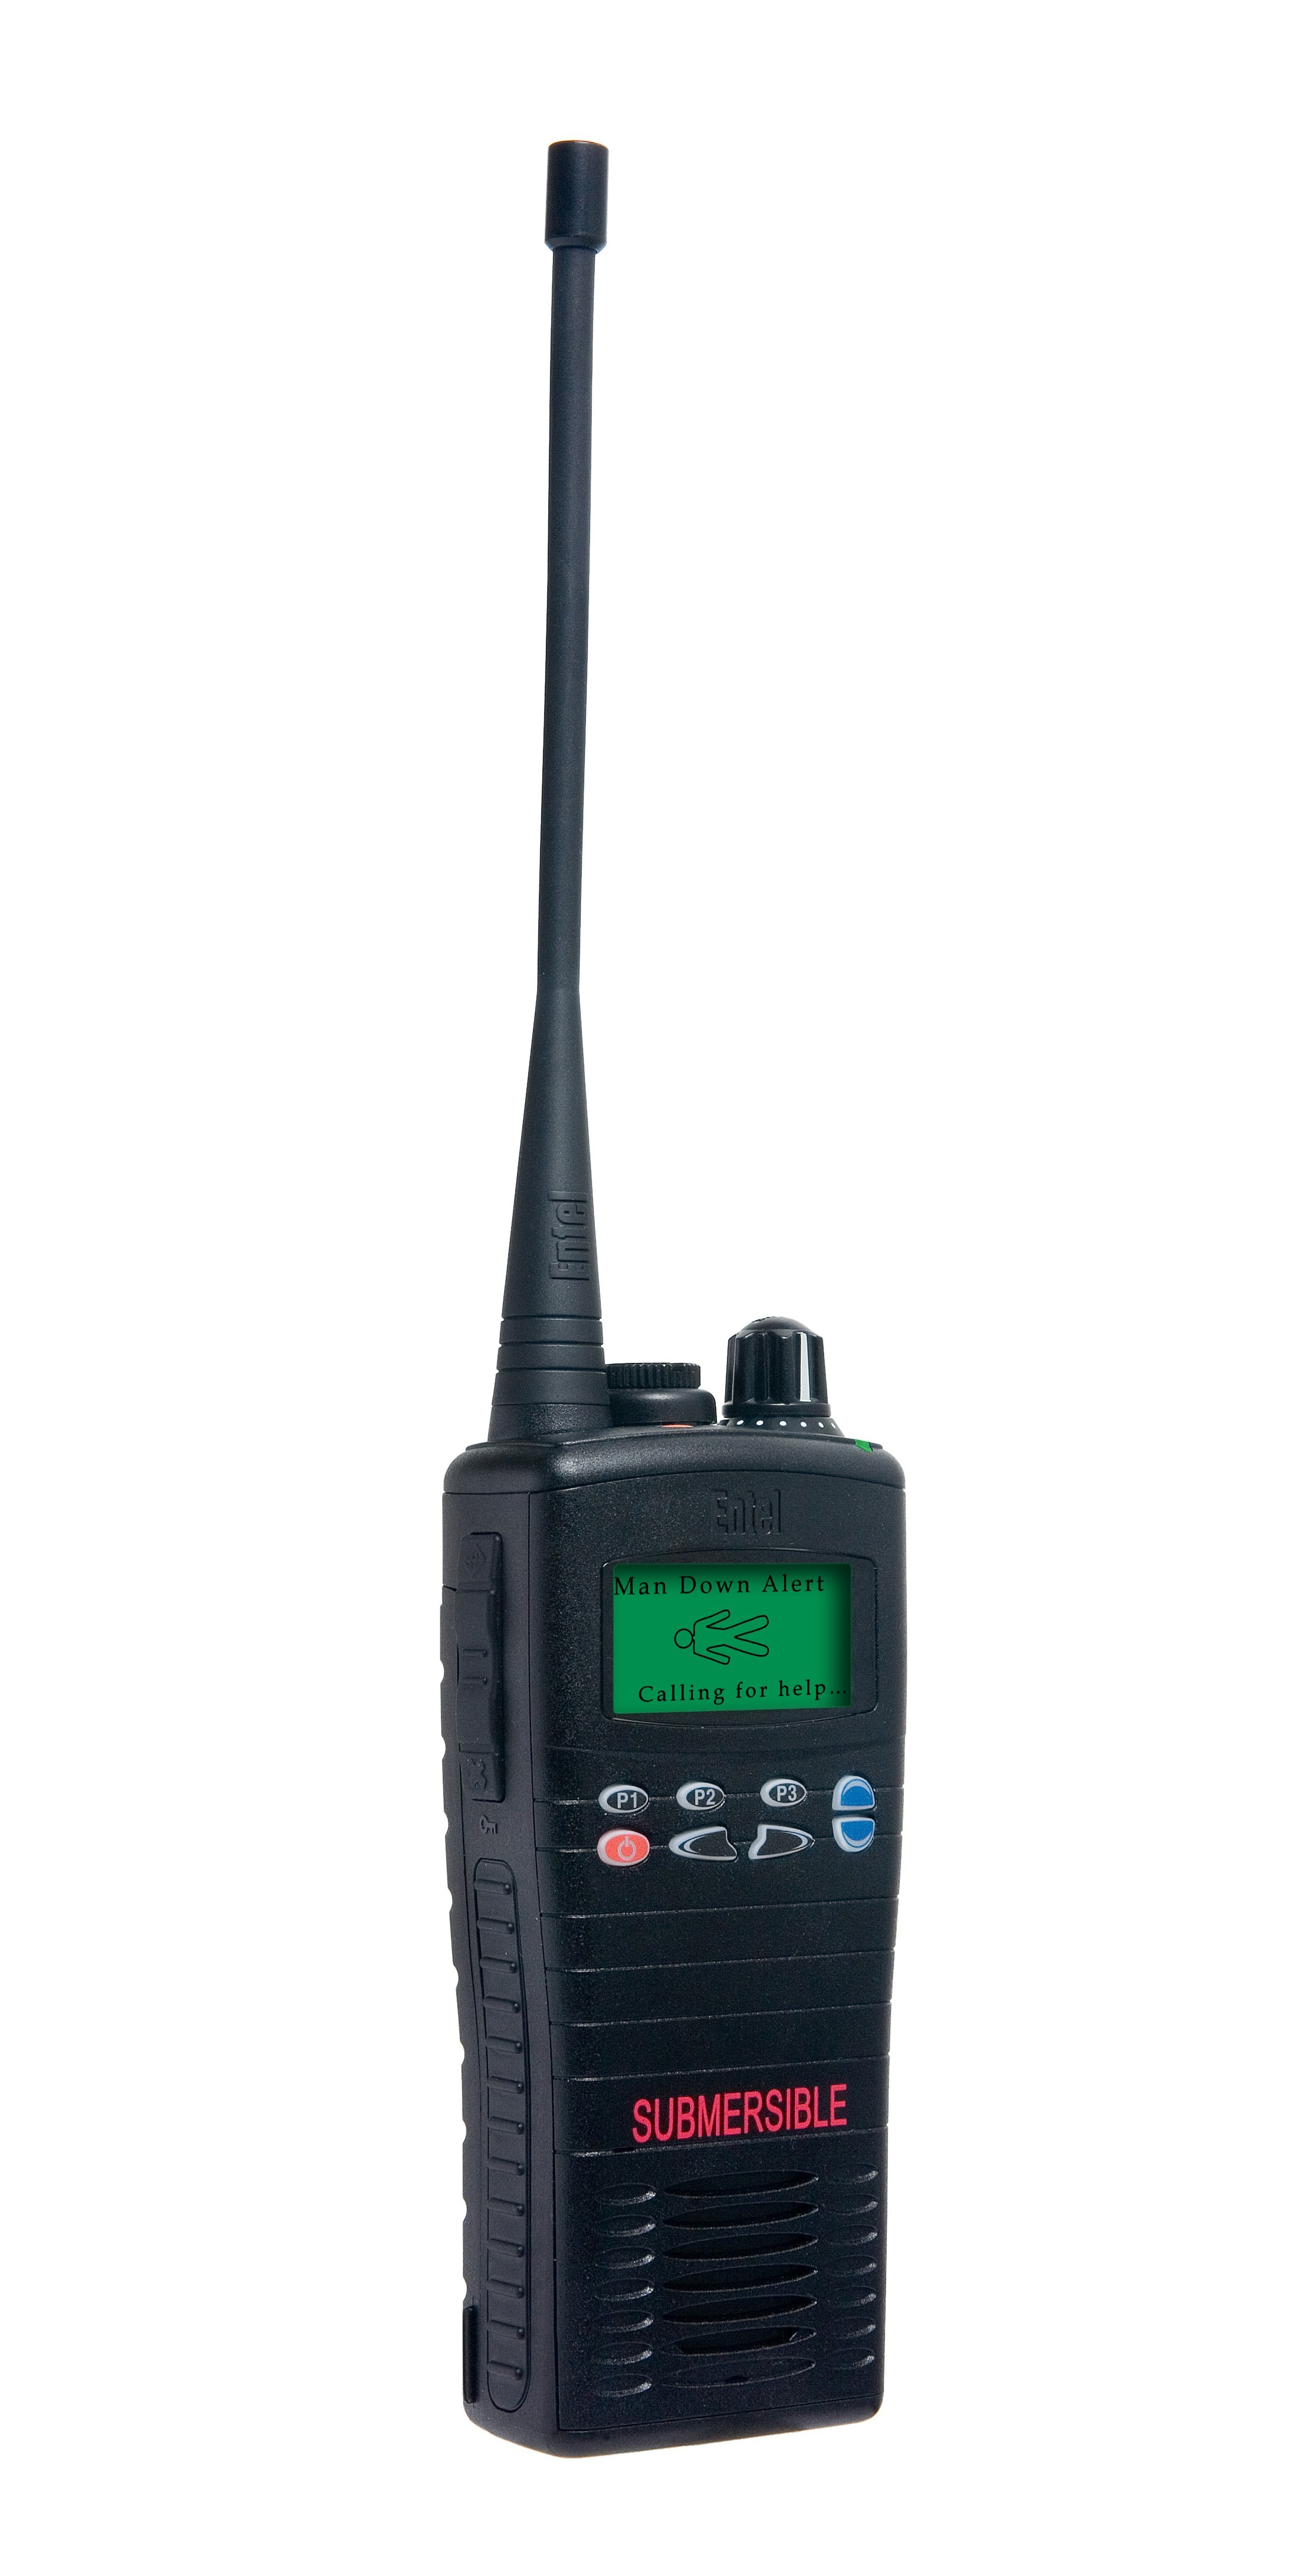 Entel HT915T MPT1327 Two Way Radio - VHF Mid- Front